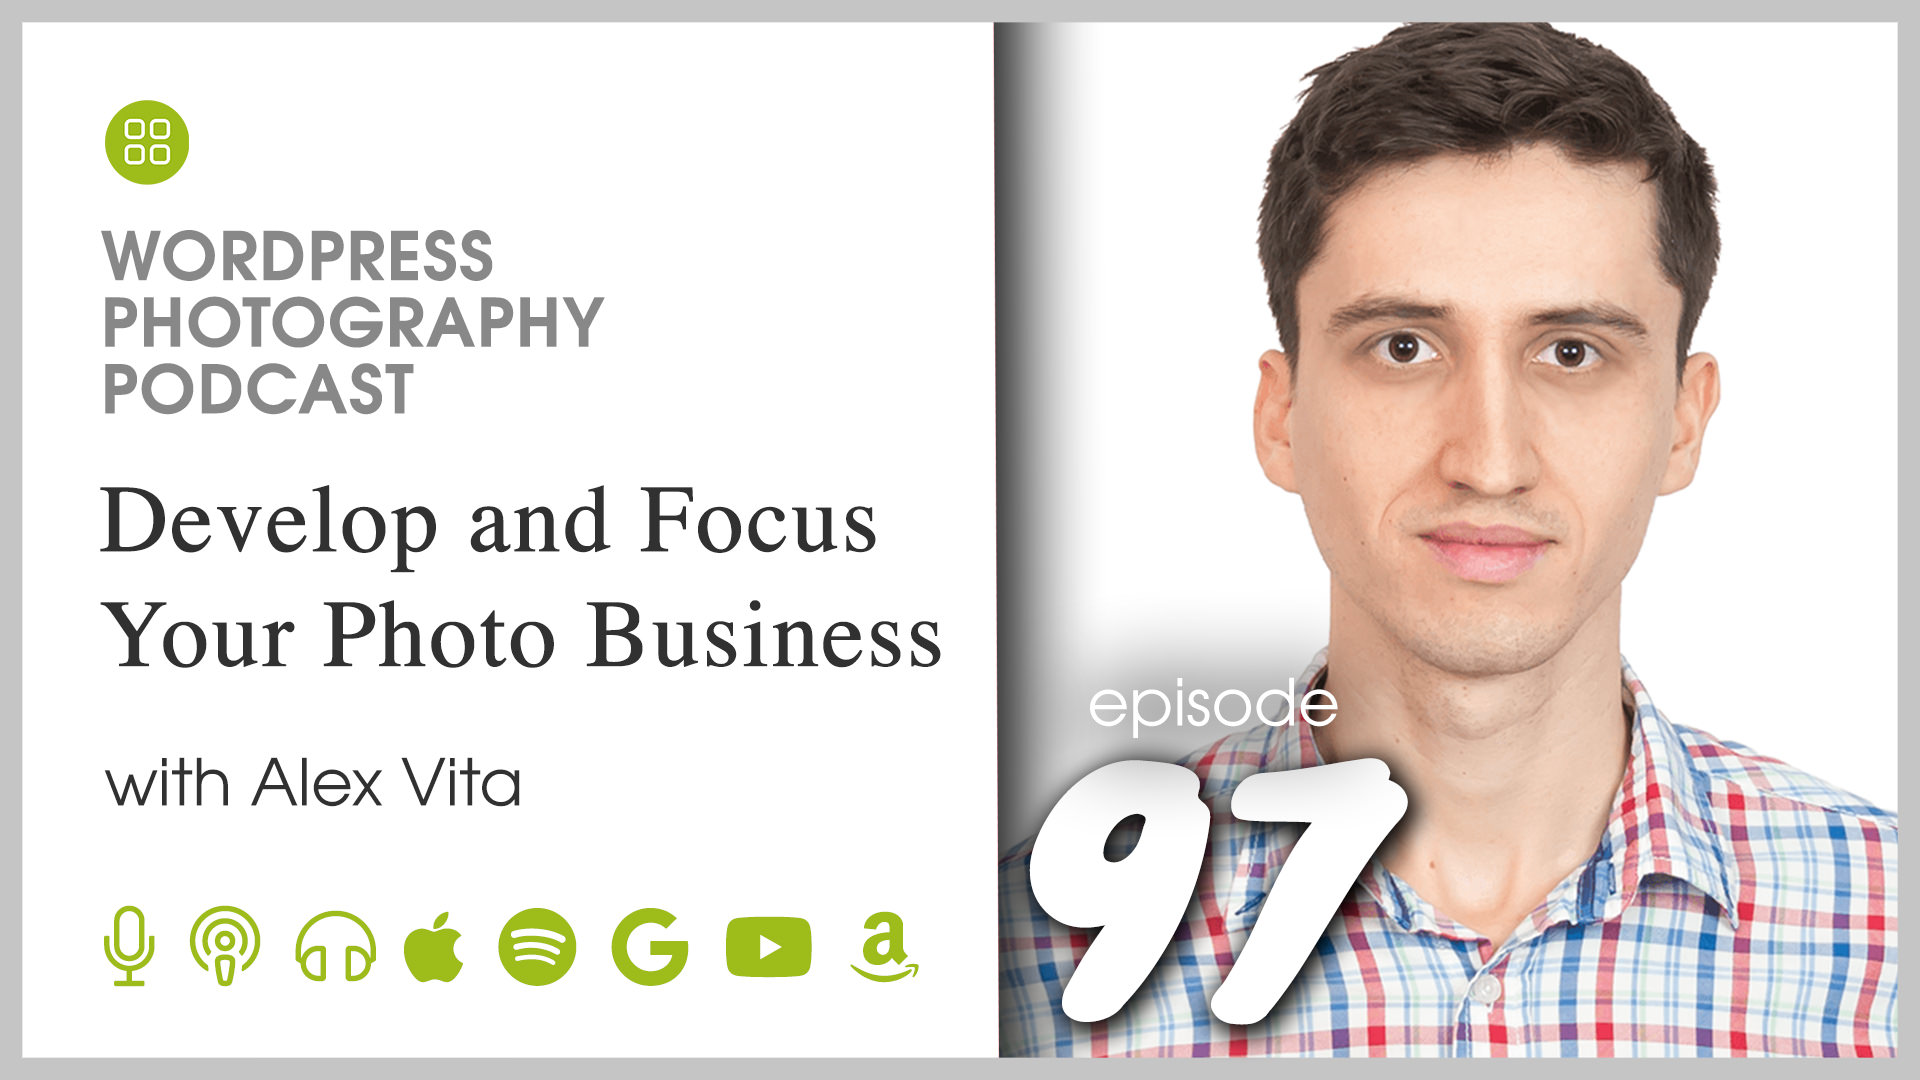 Episode 97 – Develop and Focus Your Photo Business with Alex Vita